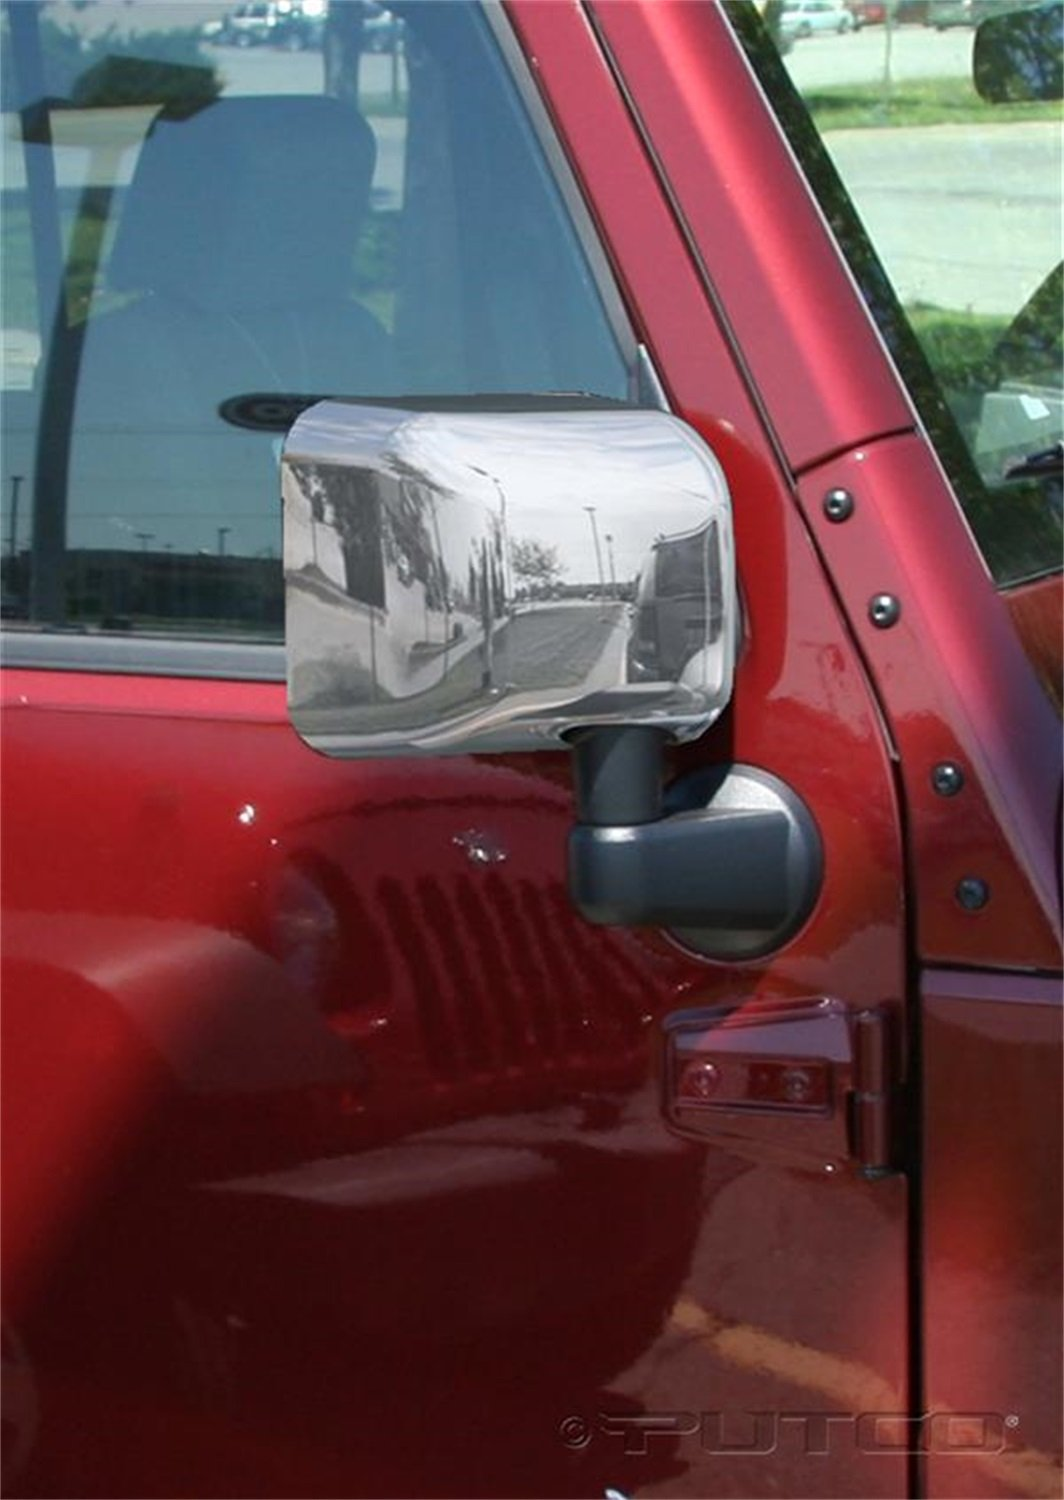 Putco 400121 Chrome Mirror Overlay for Select Jeep Models